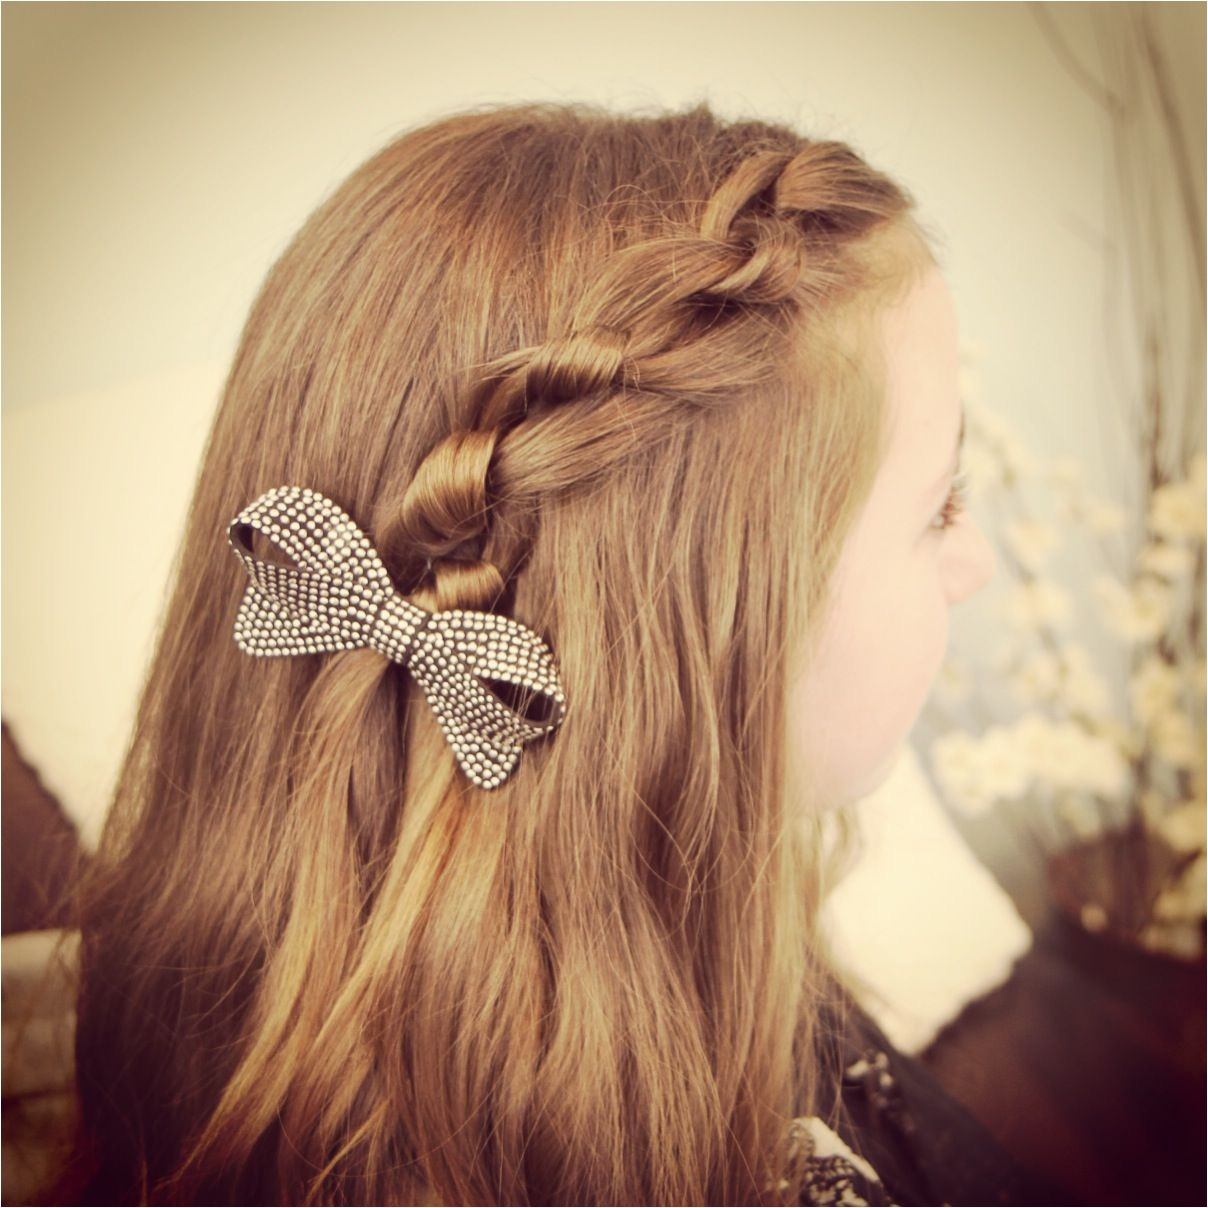 Knot braid Literally just tying knots in your hair and it looks really cute